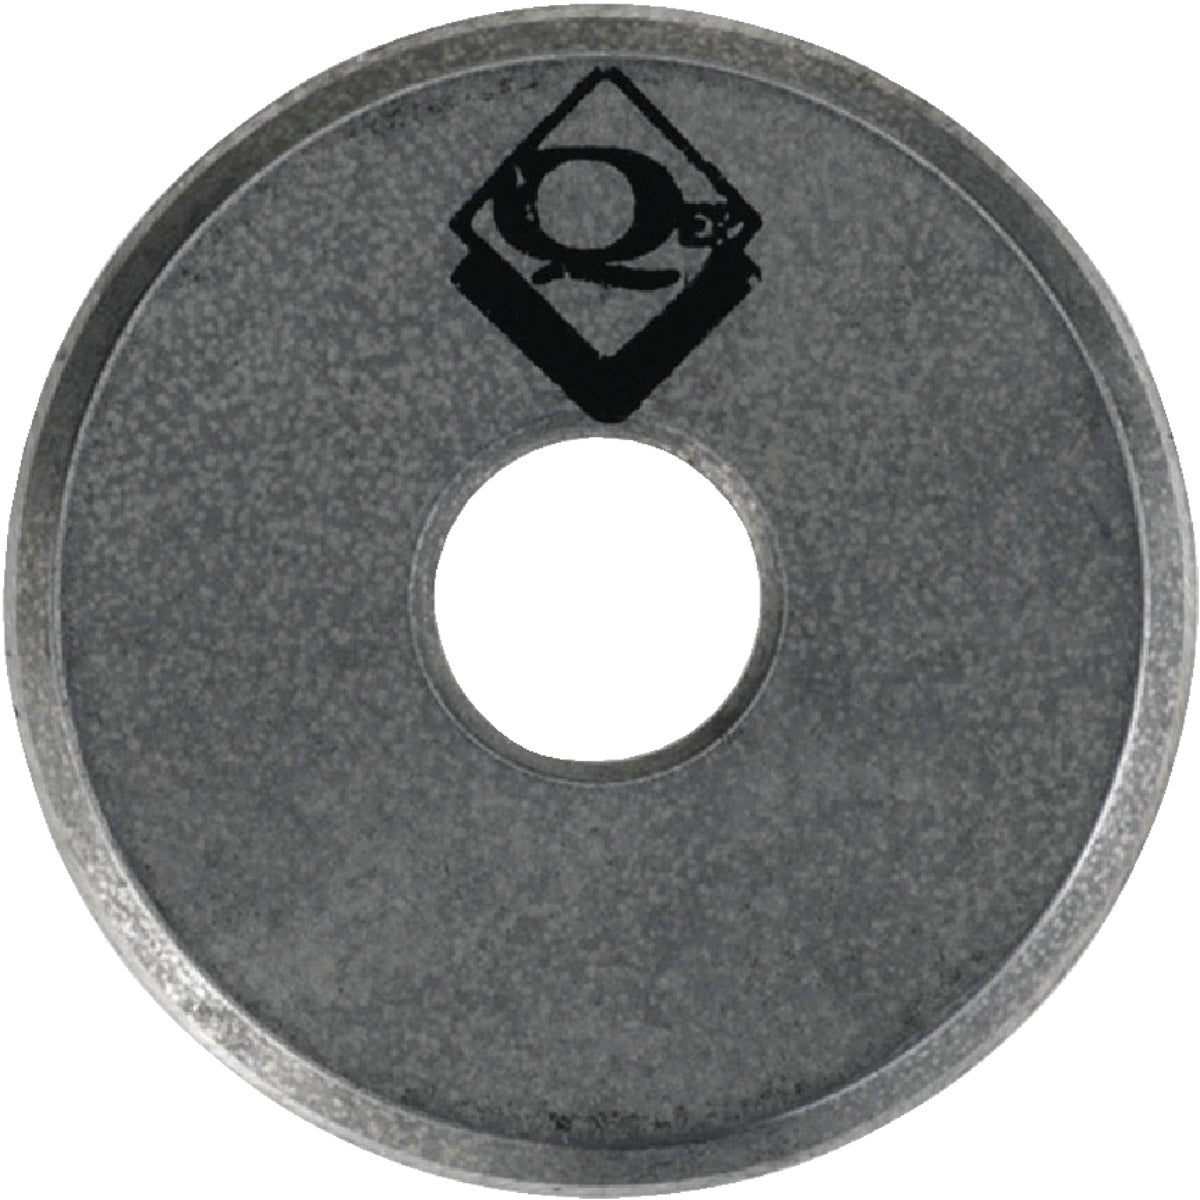 "7/8"" TILE CUTTER WHEEL"